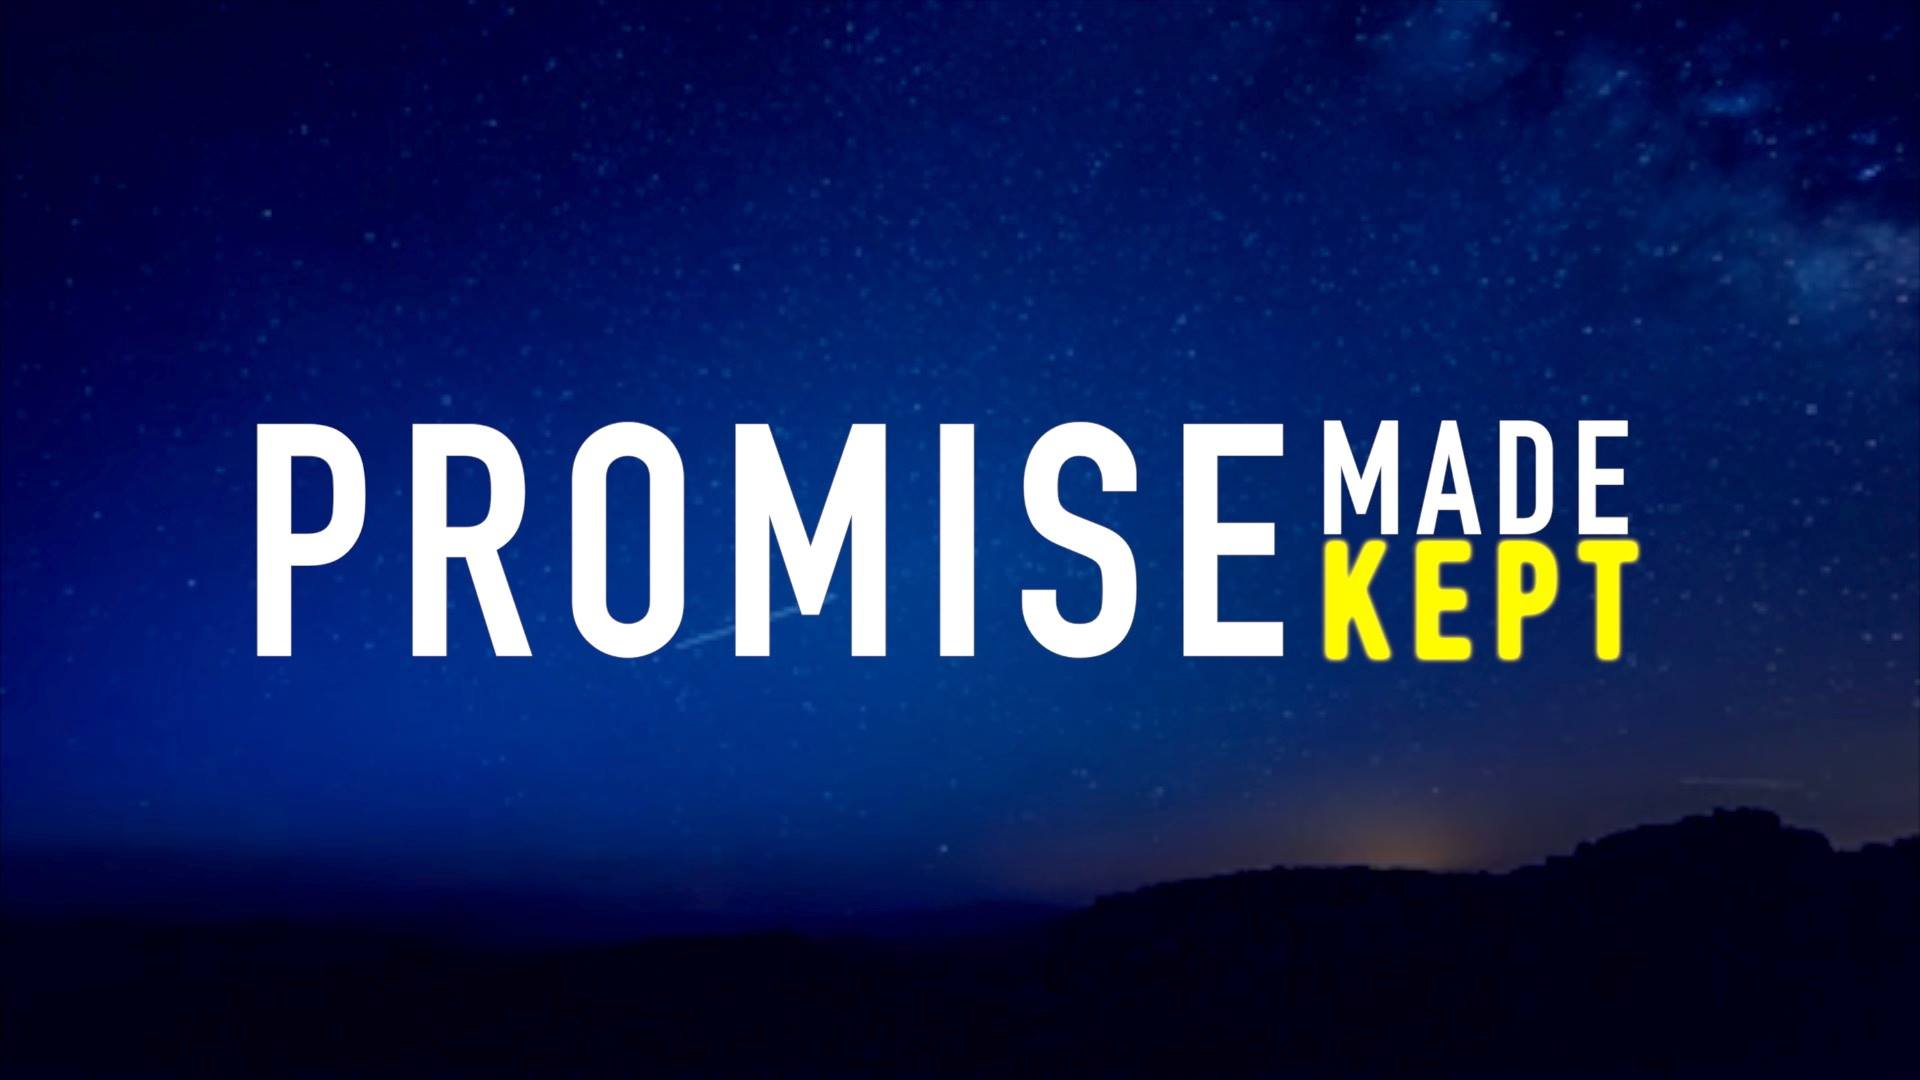 Promise Made-Kept - A series through the book of Genesis.